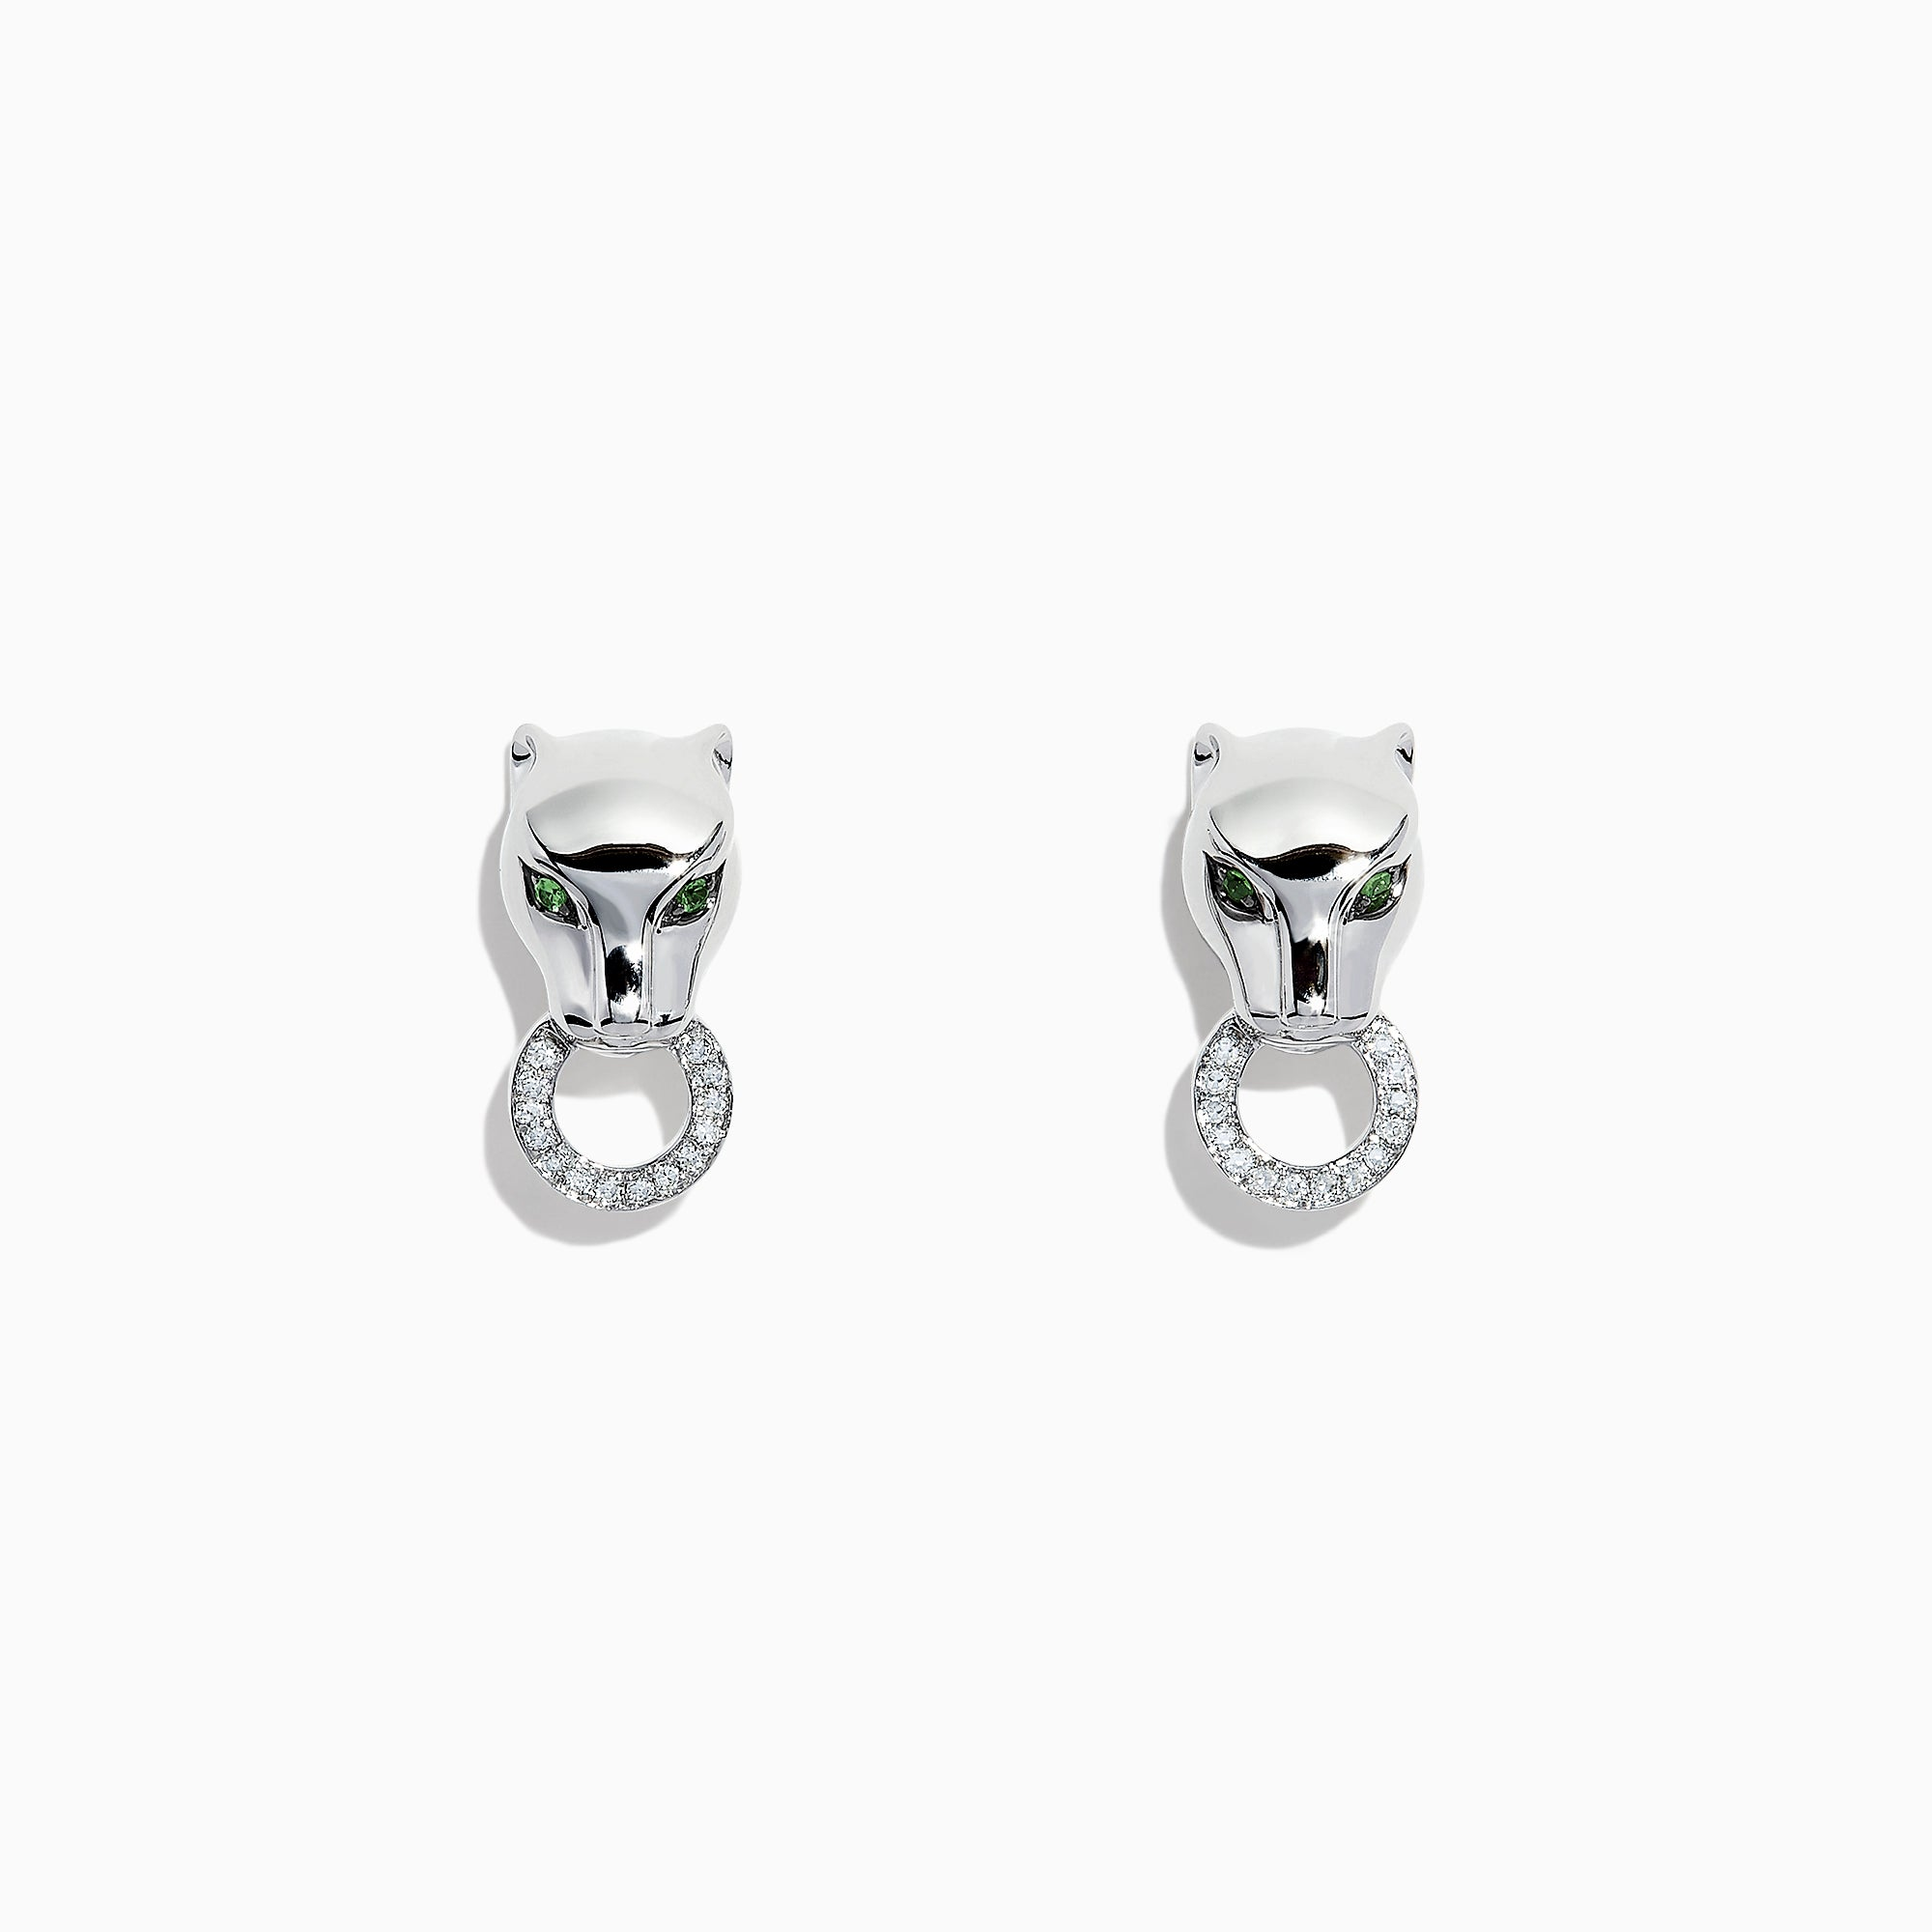 Effy Signature Sterling Silver Diamond and Tsavorite Panther Stud Earrings, 0.16 TCW